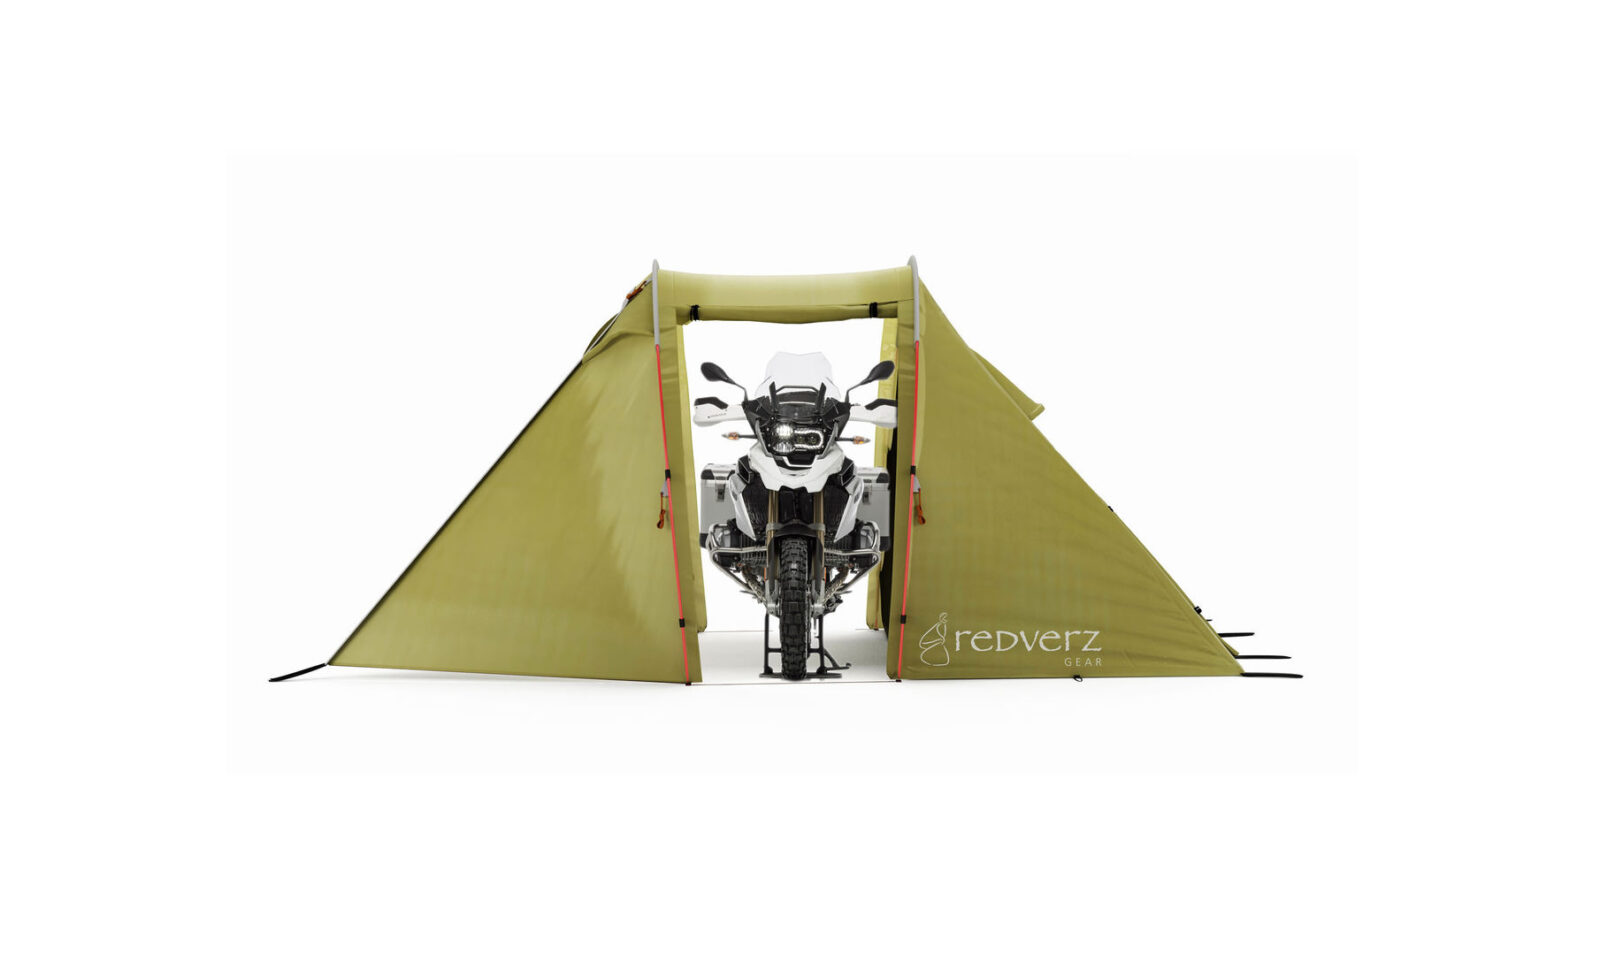 Redverz Solo Expedition Tent 1600x956 - Redverz Solo Expedition Tent